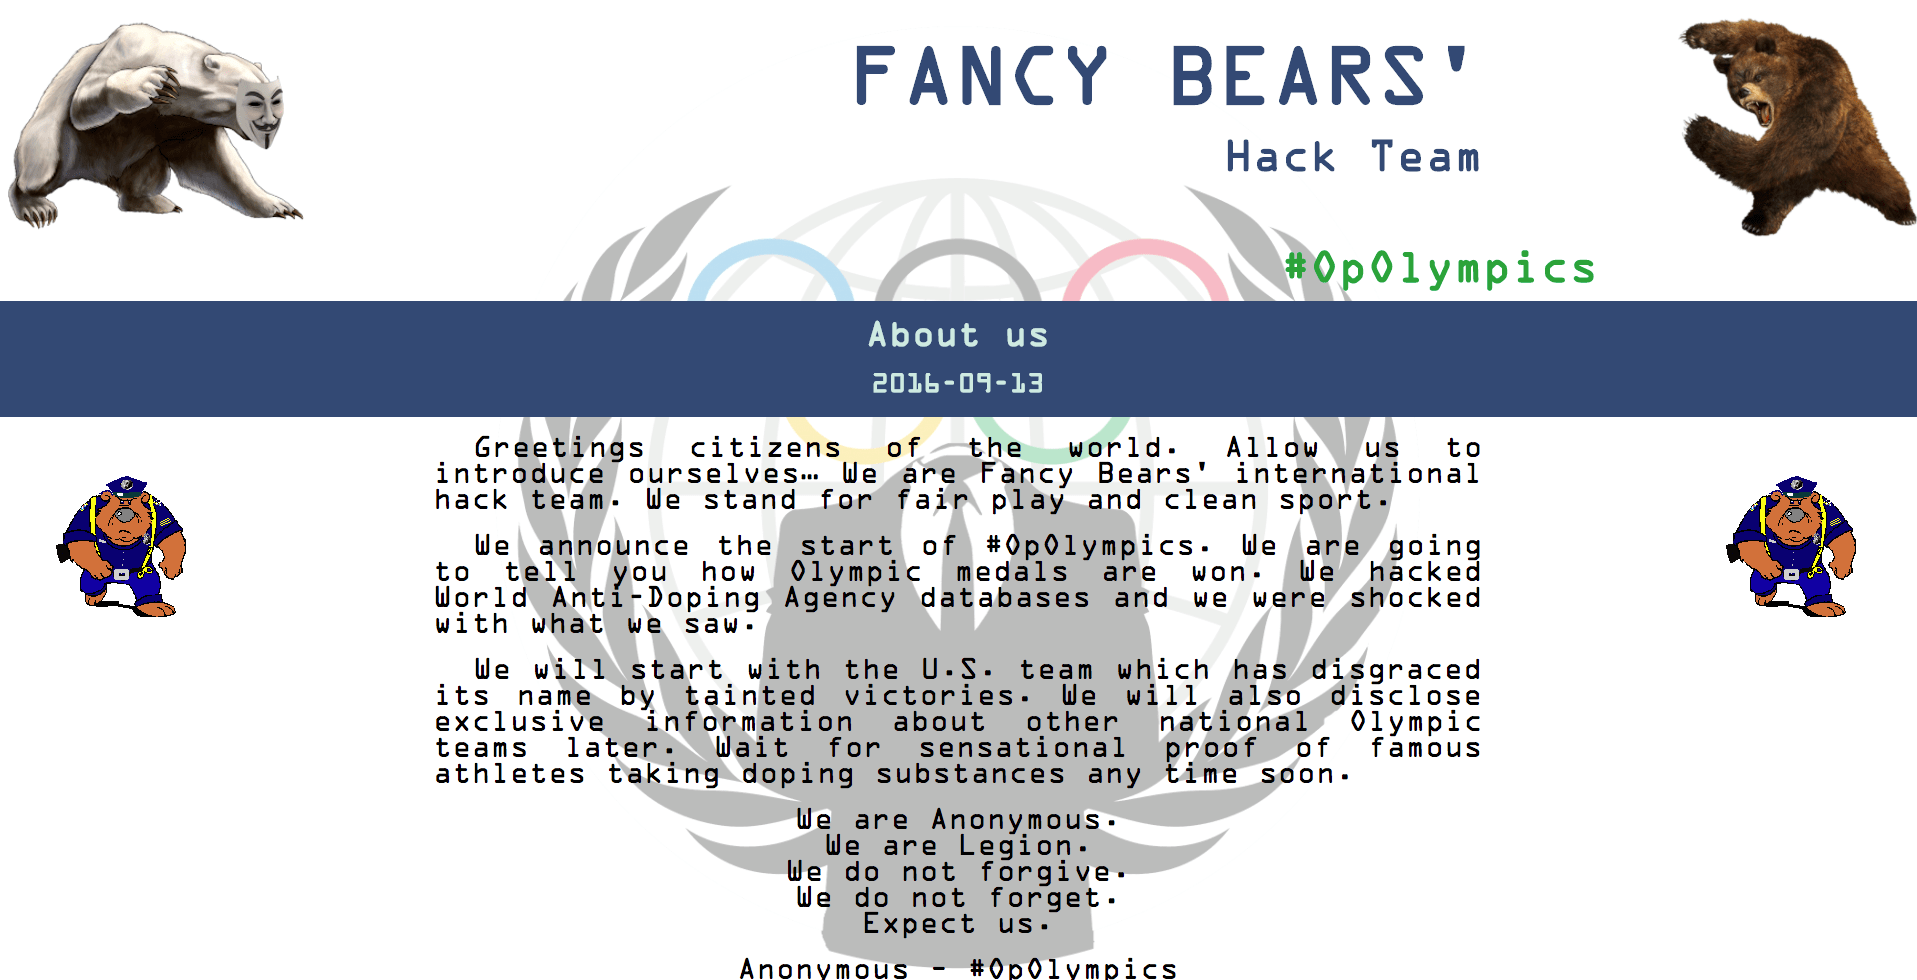 Figure 5. Fancy Bears' Hack Team website. (Source: SecureWorks)